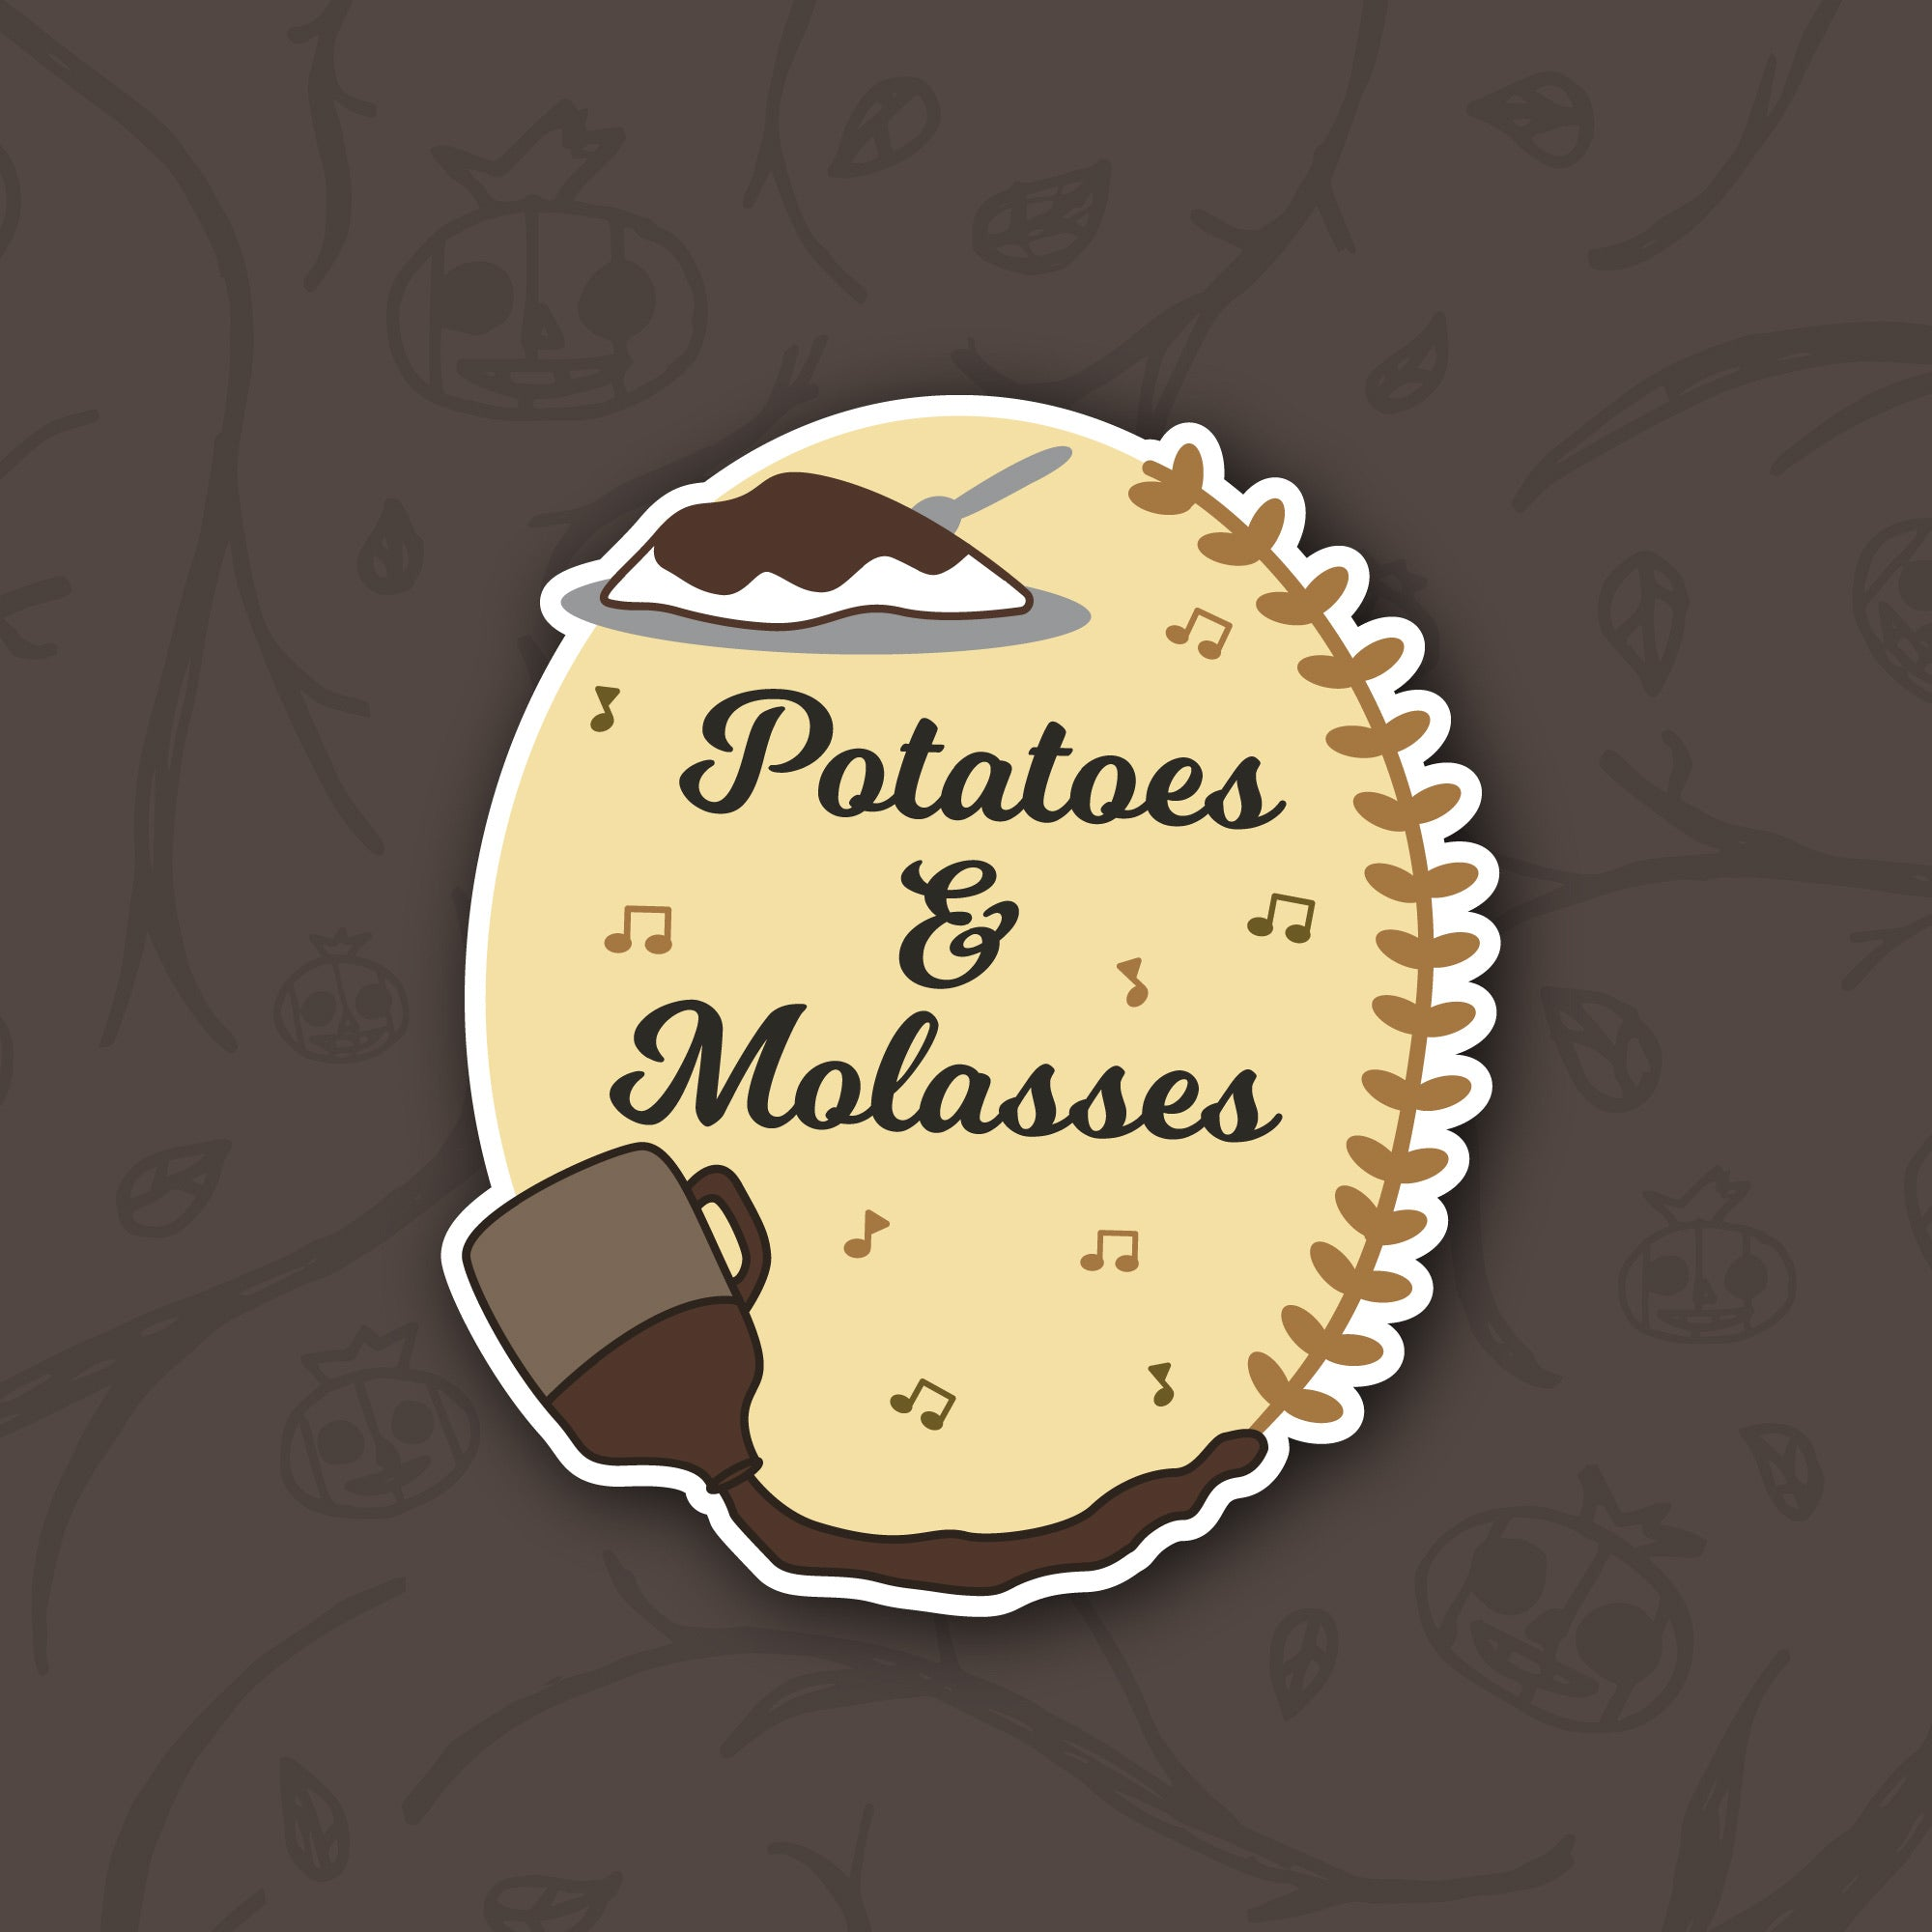 Potatoes & Molasses Sticker